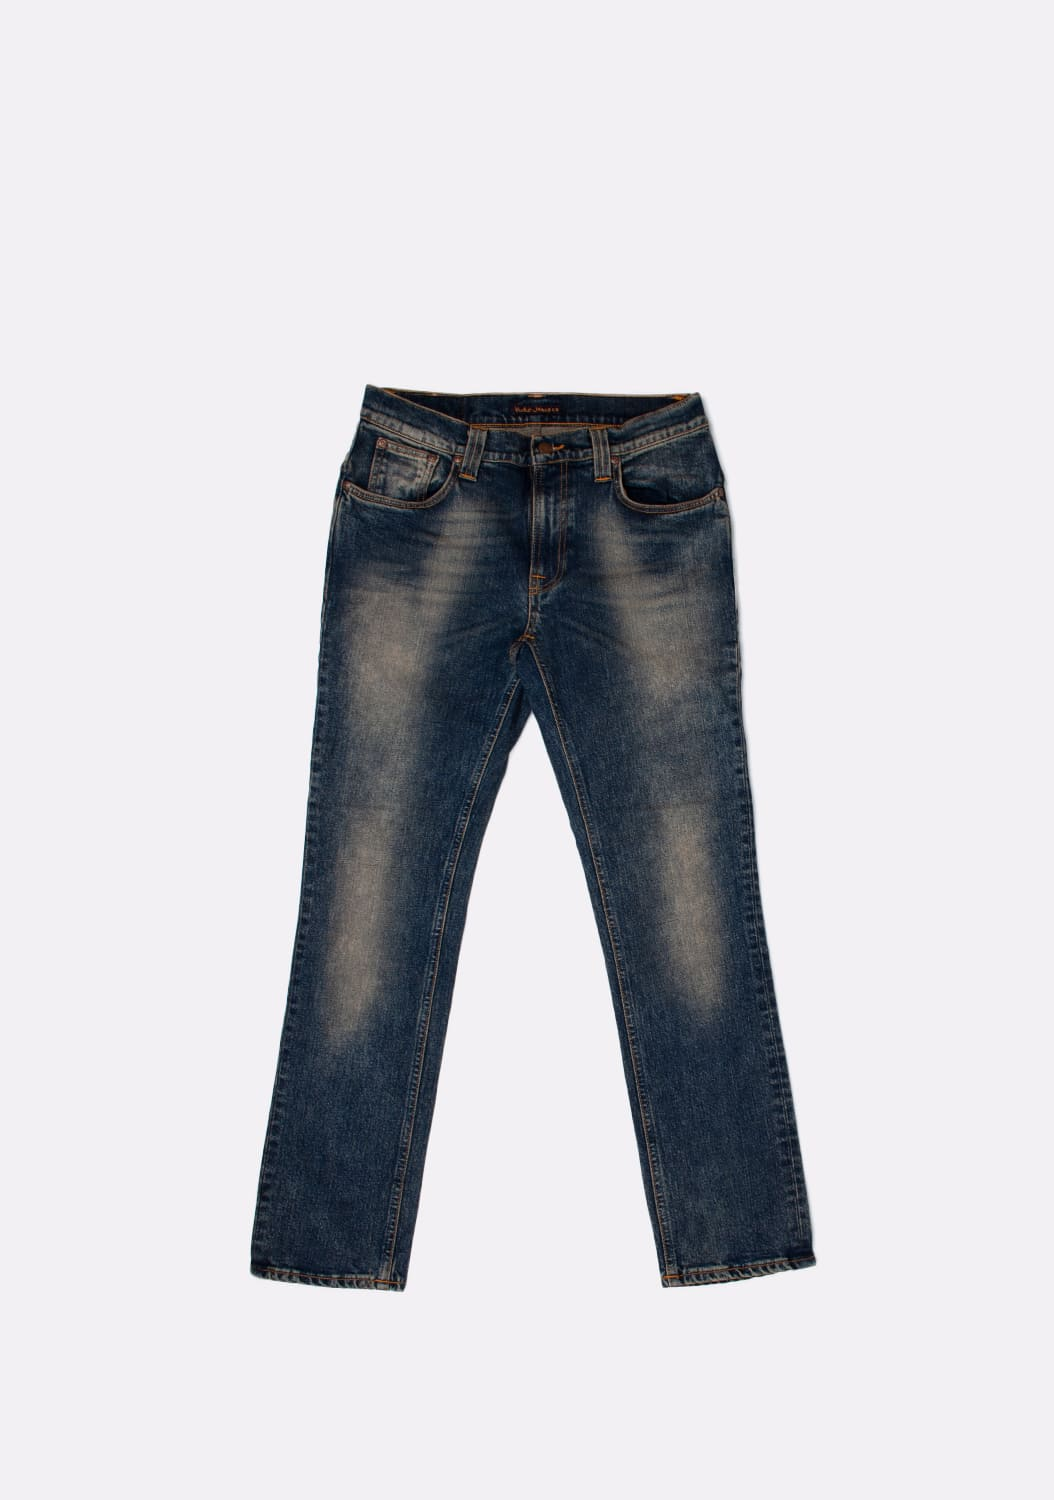 Nudie-Jeans-Thin-Finn-Org.-Heavy-Rust-dzinsai-dydis-31-30 (2)